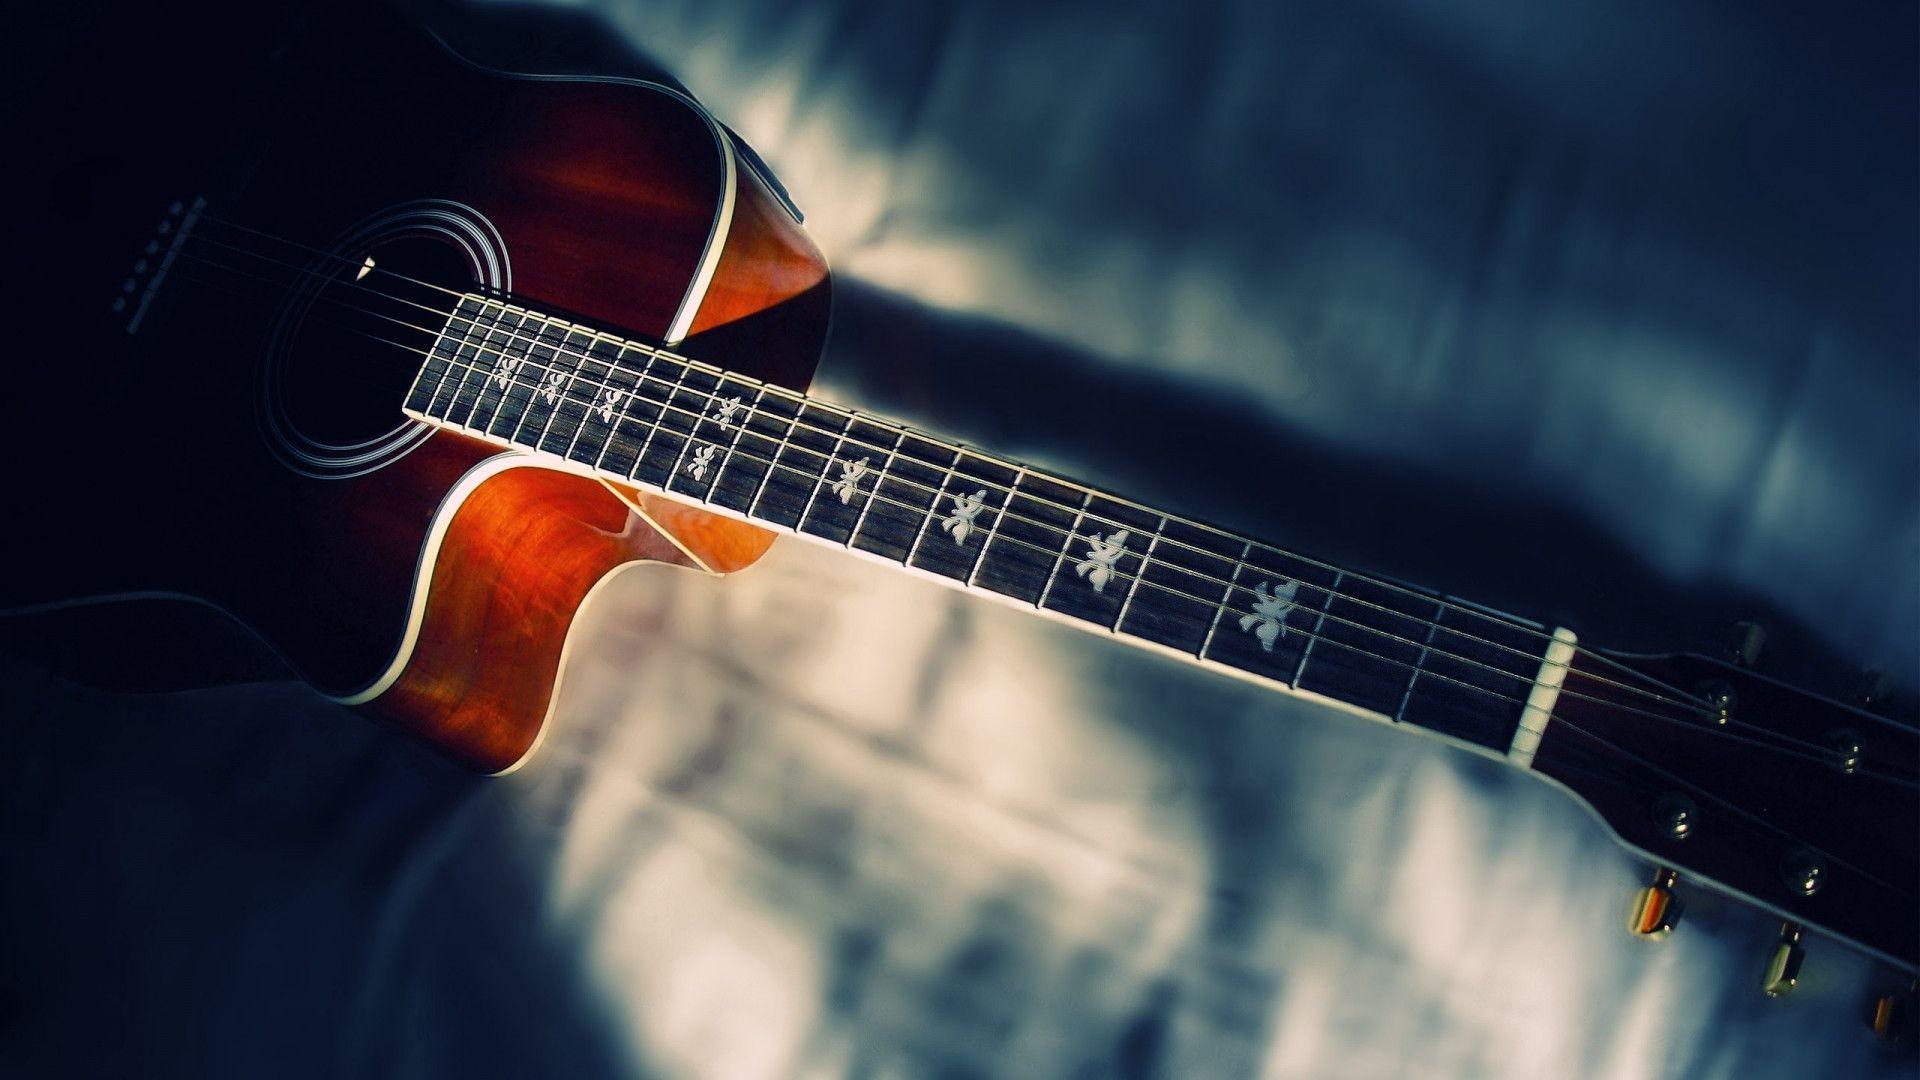 Wallpapers For > Guitar Wallpaper Hd 1080p